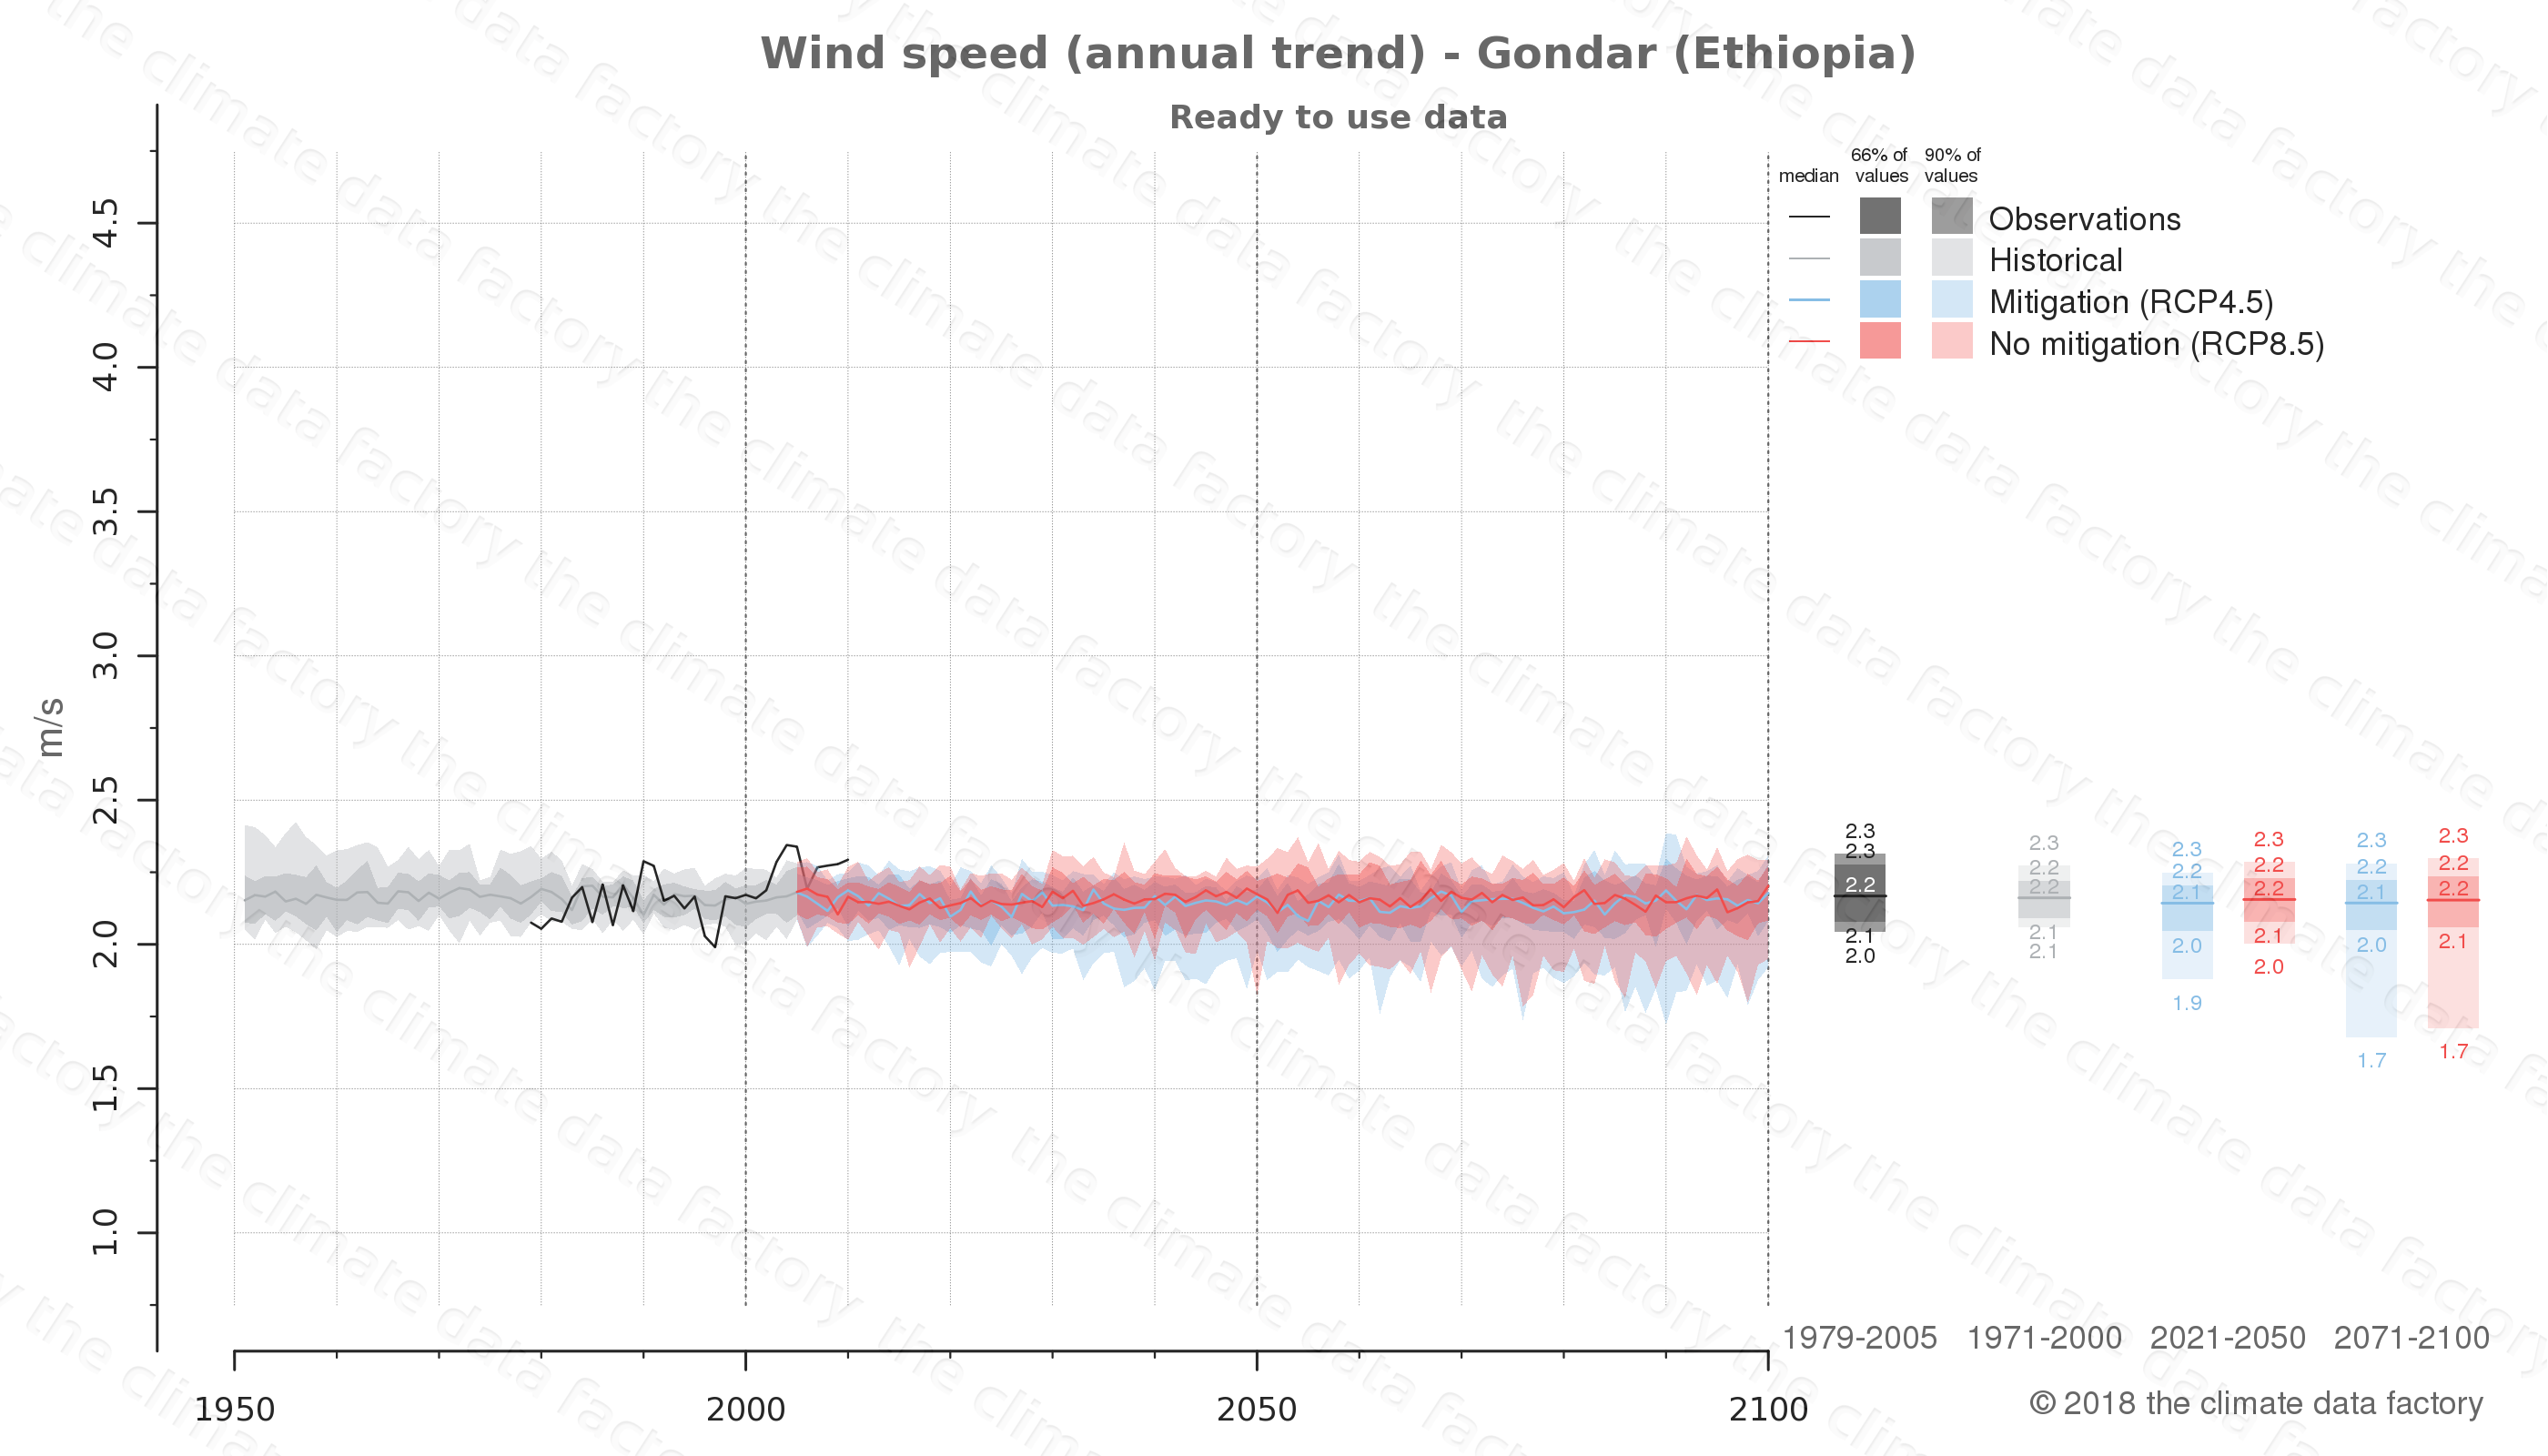 climate change data policy adaptation climate graph city data wind-speed gondar ethiopia